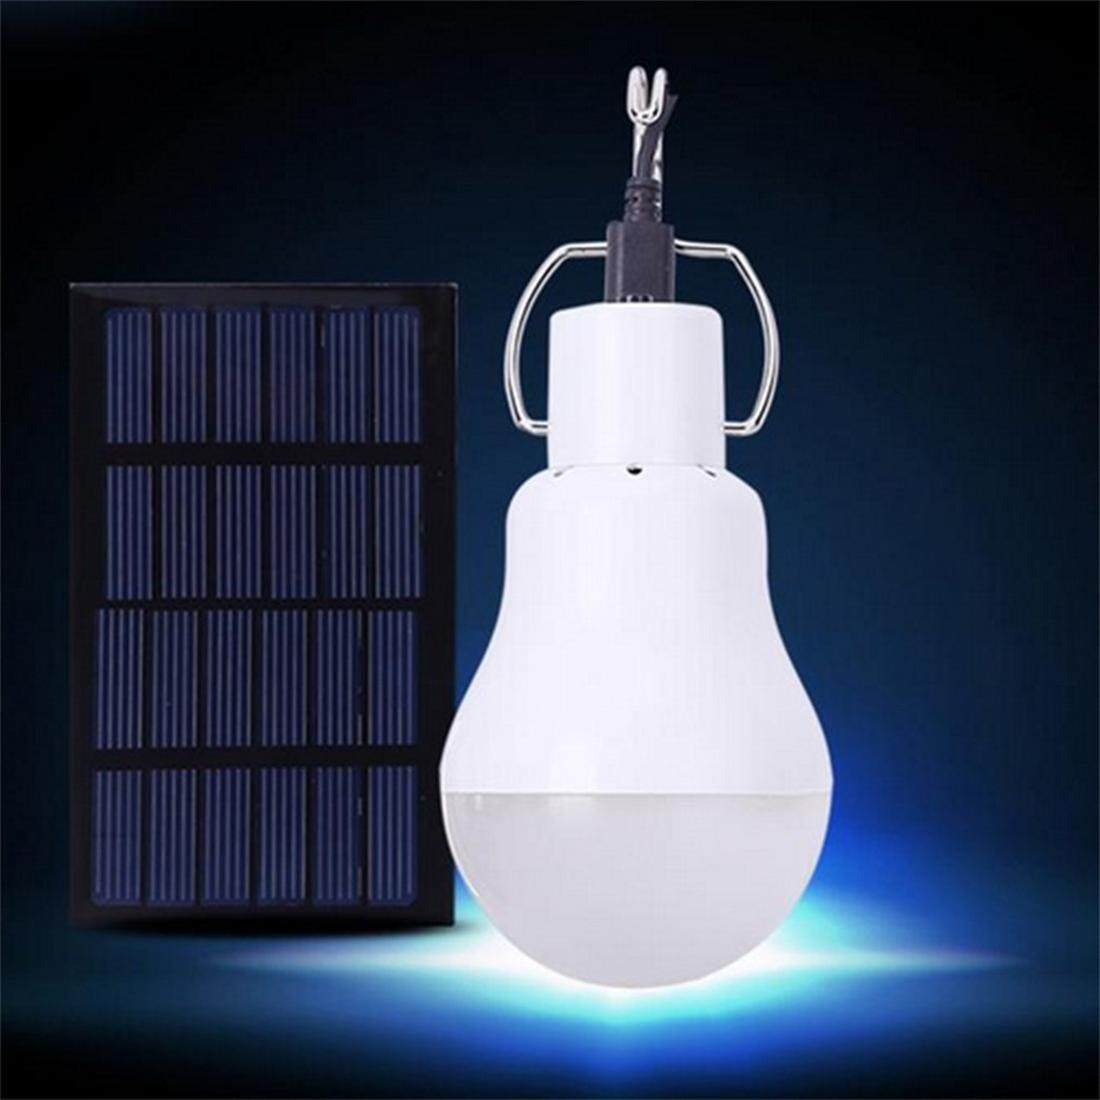 Portable Solar Powered LED Lamp Light for Housing Outdoor Activities Emergency